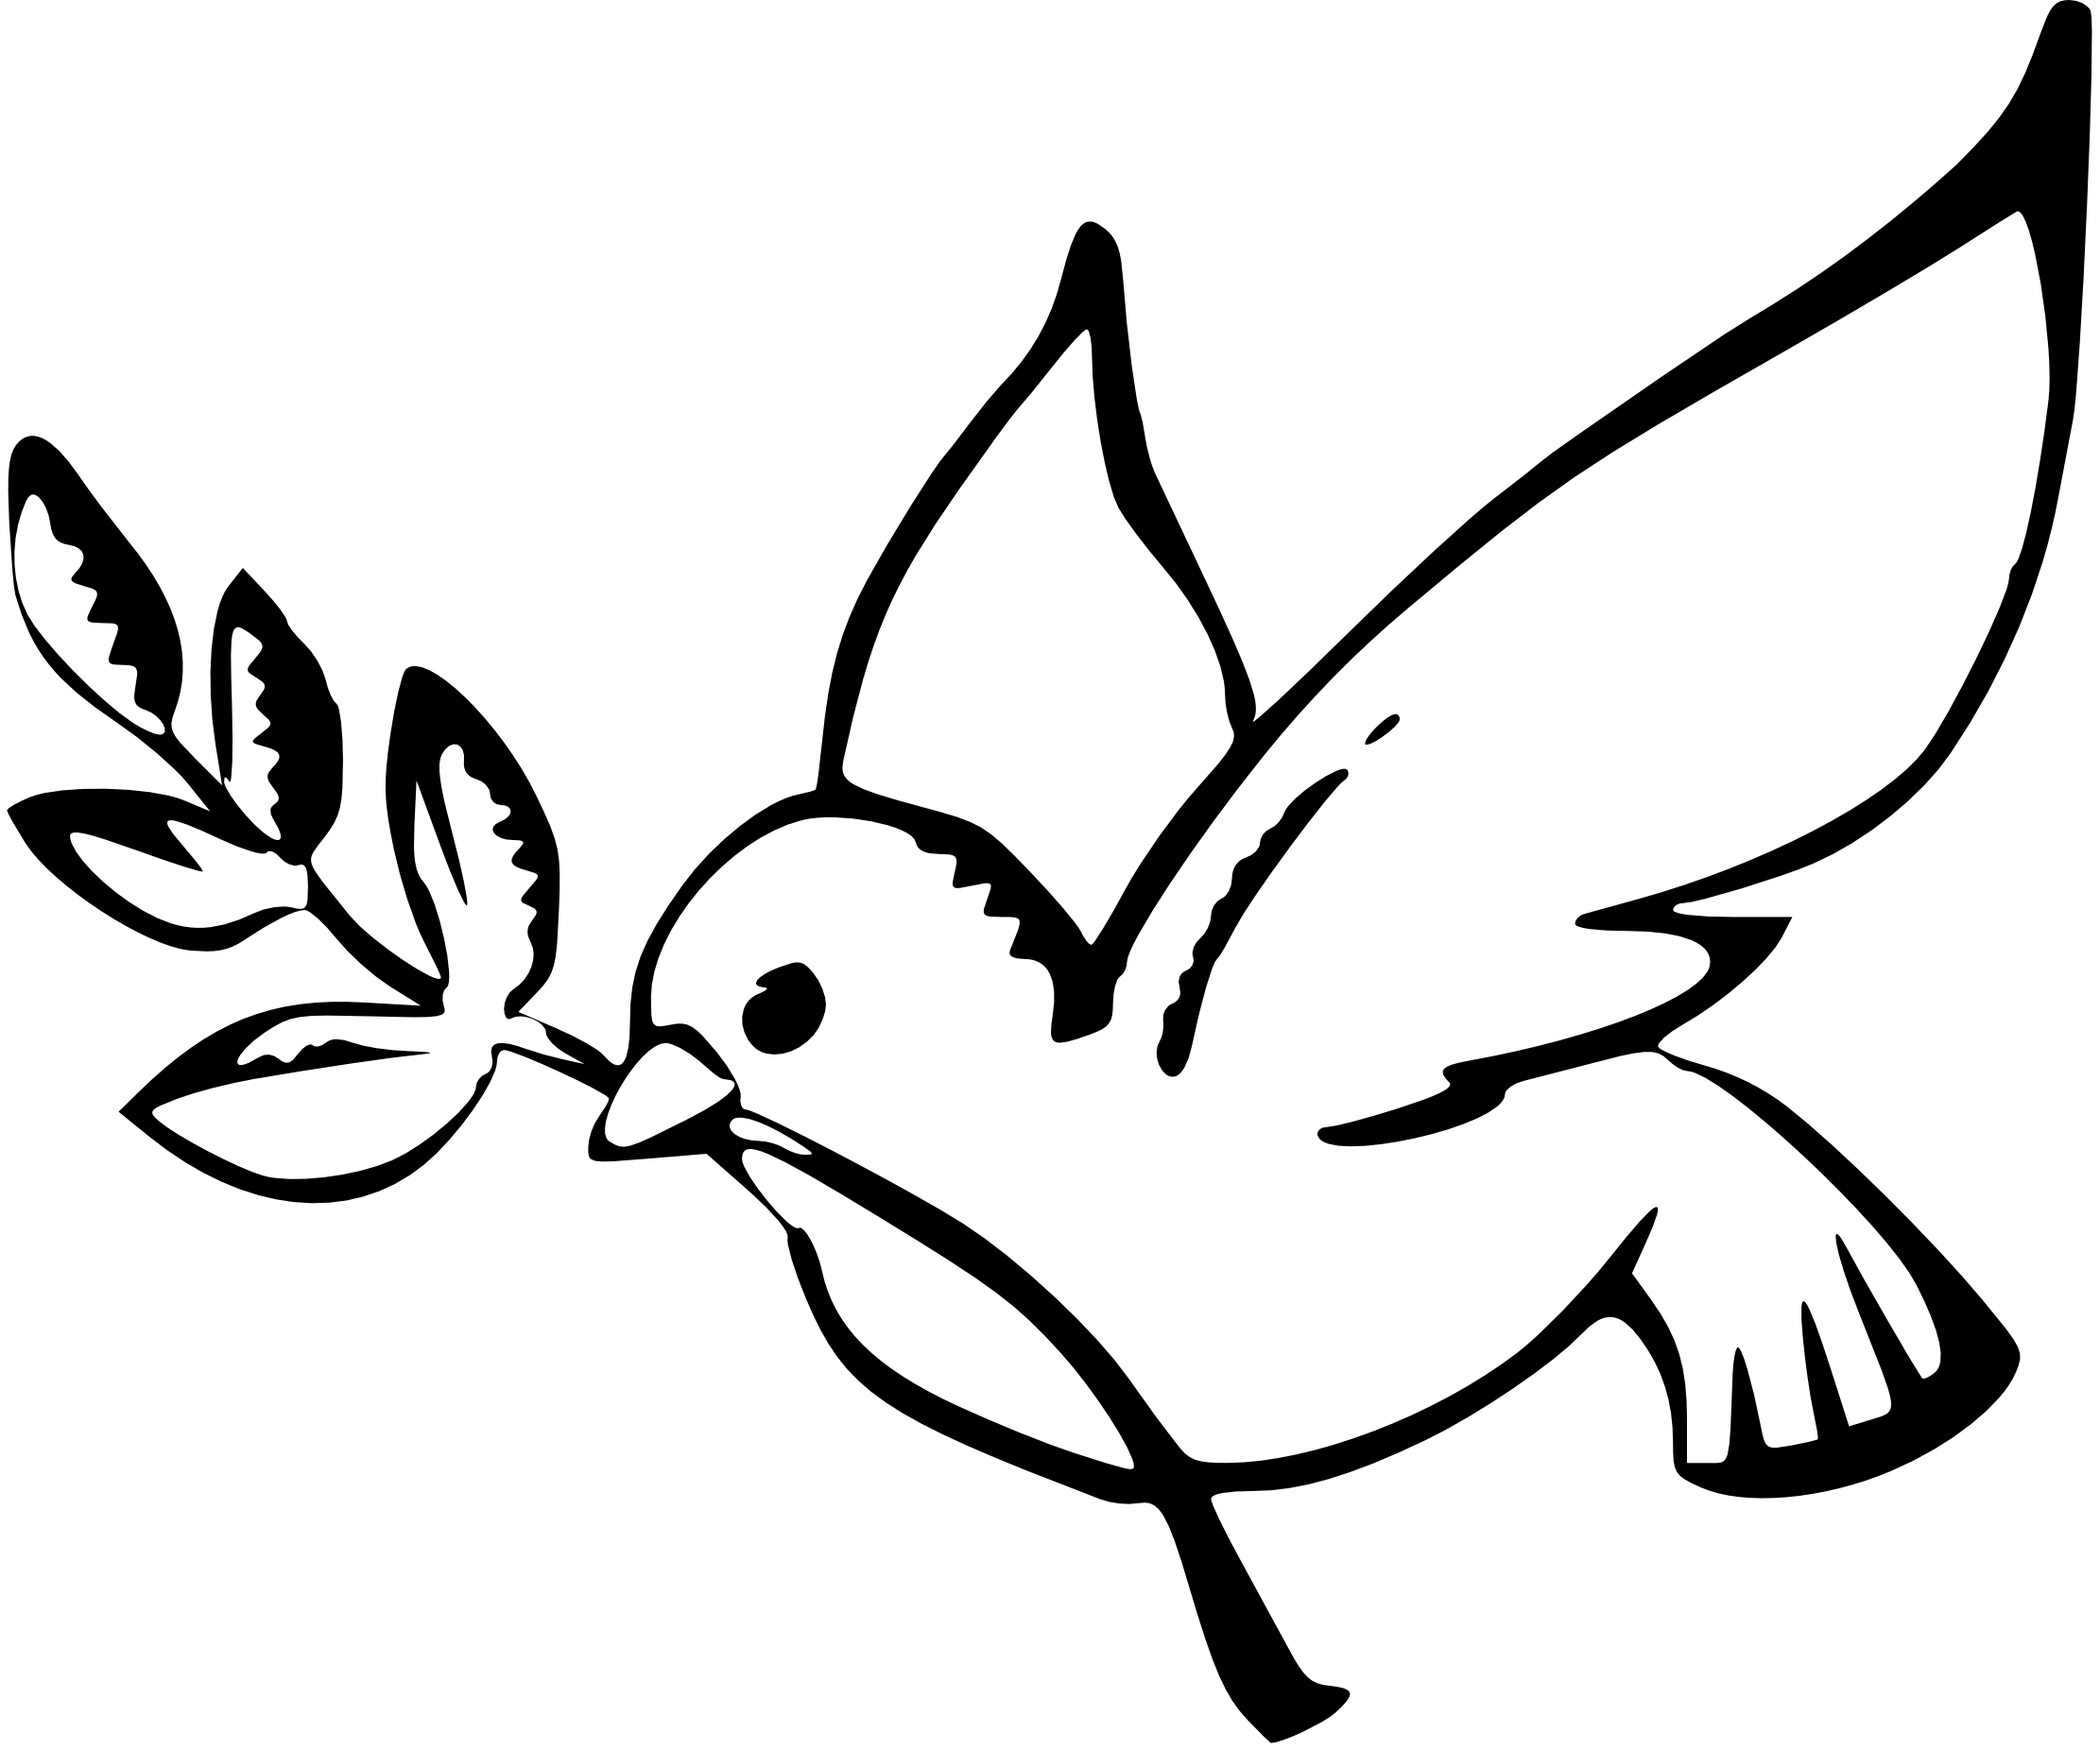 Doves drawing png. Dove line clipart best